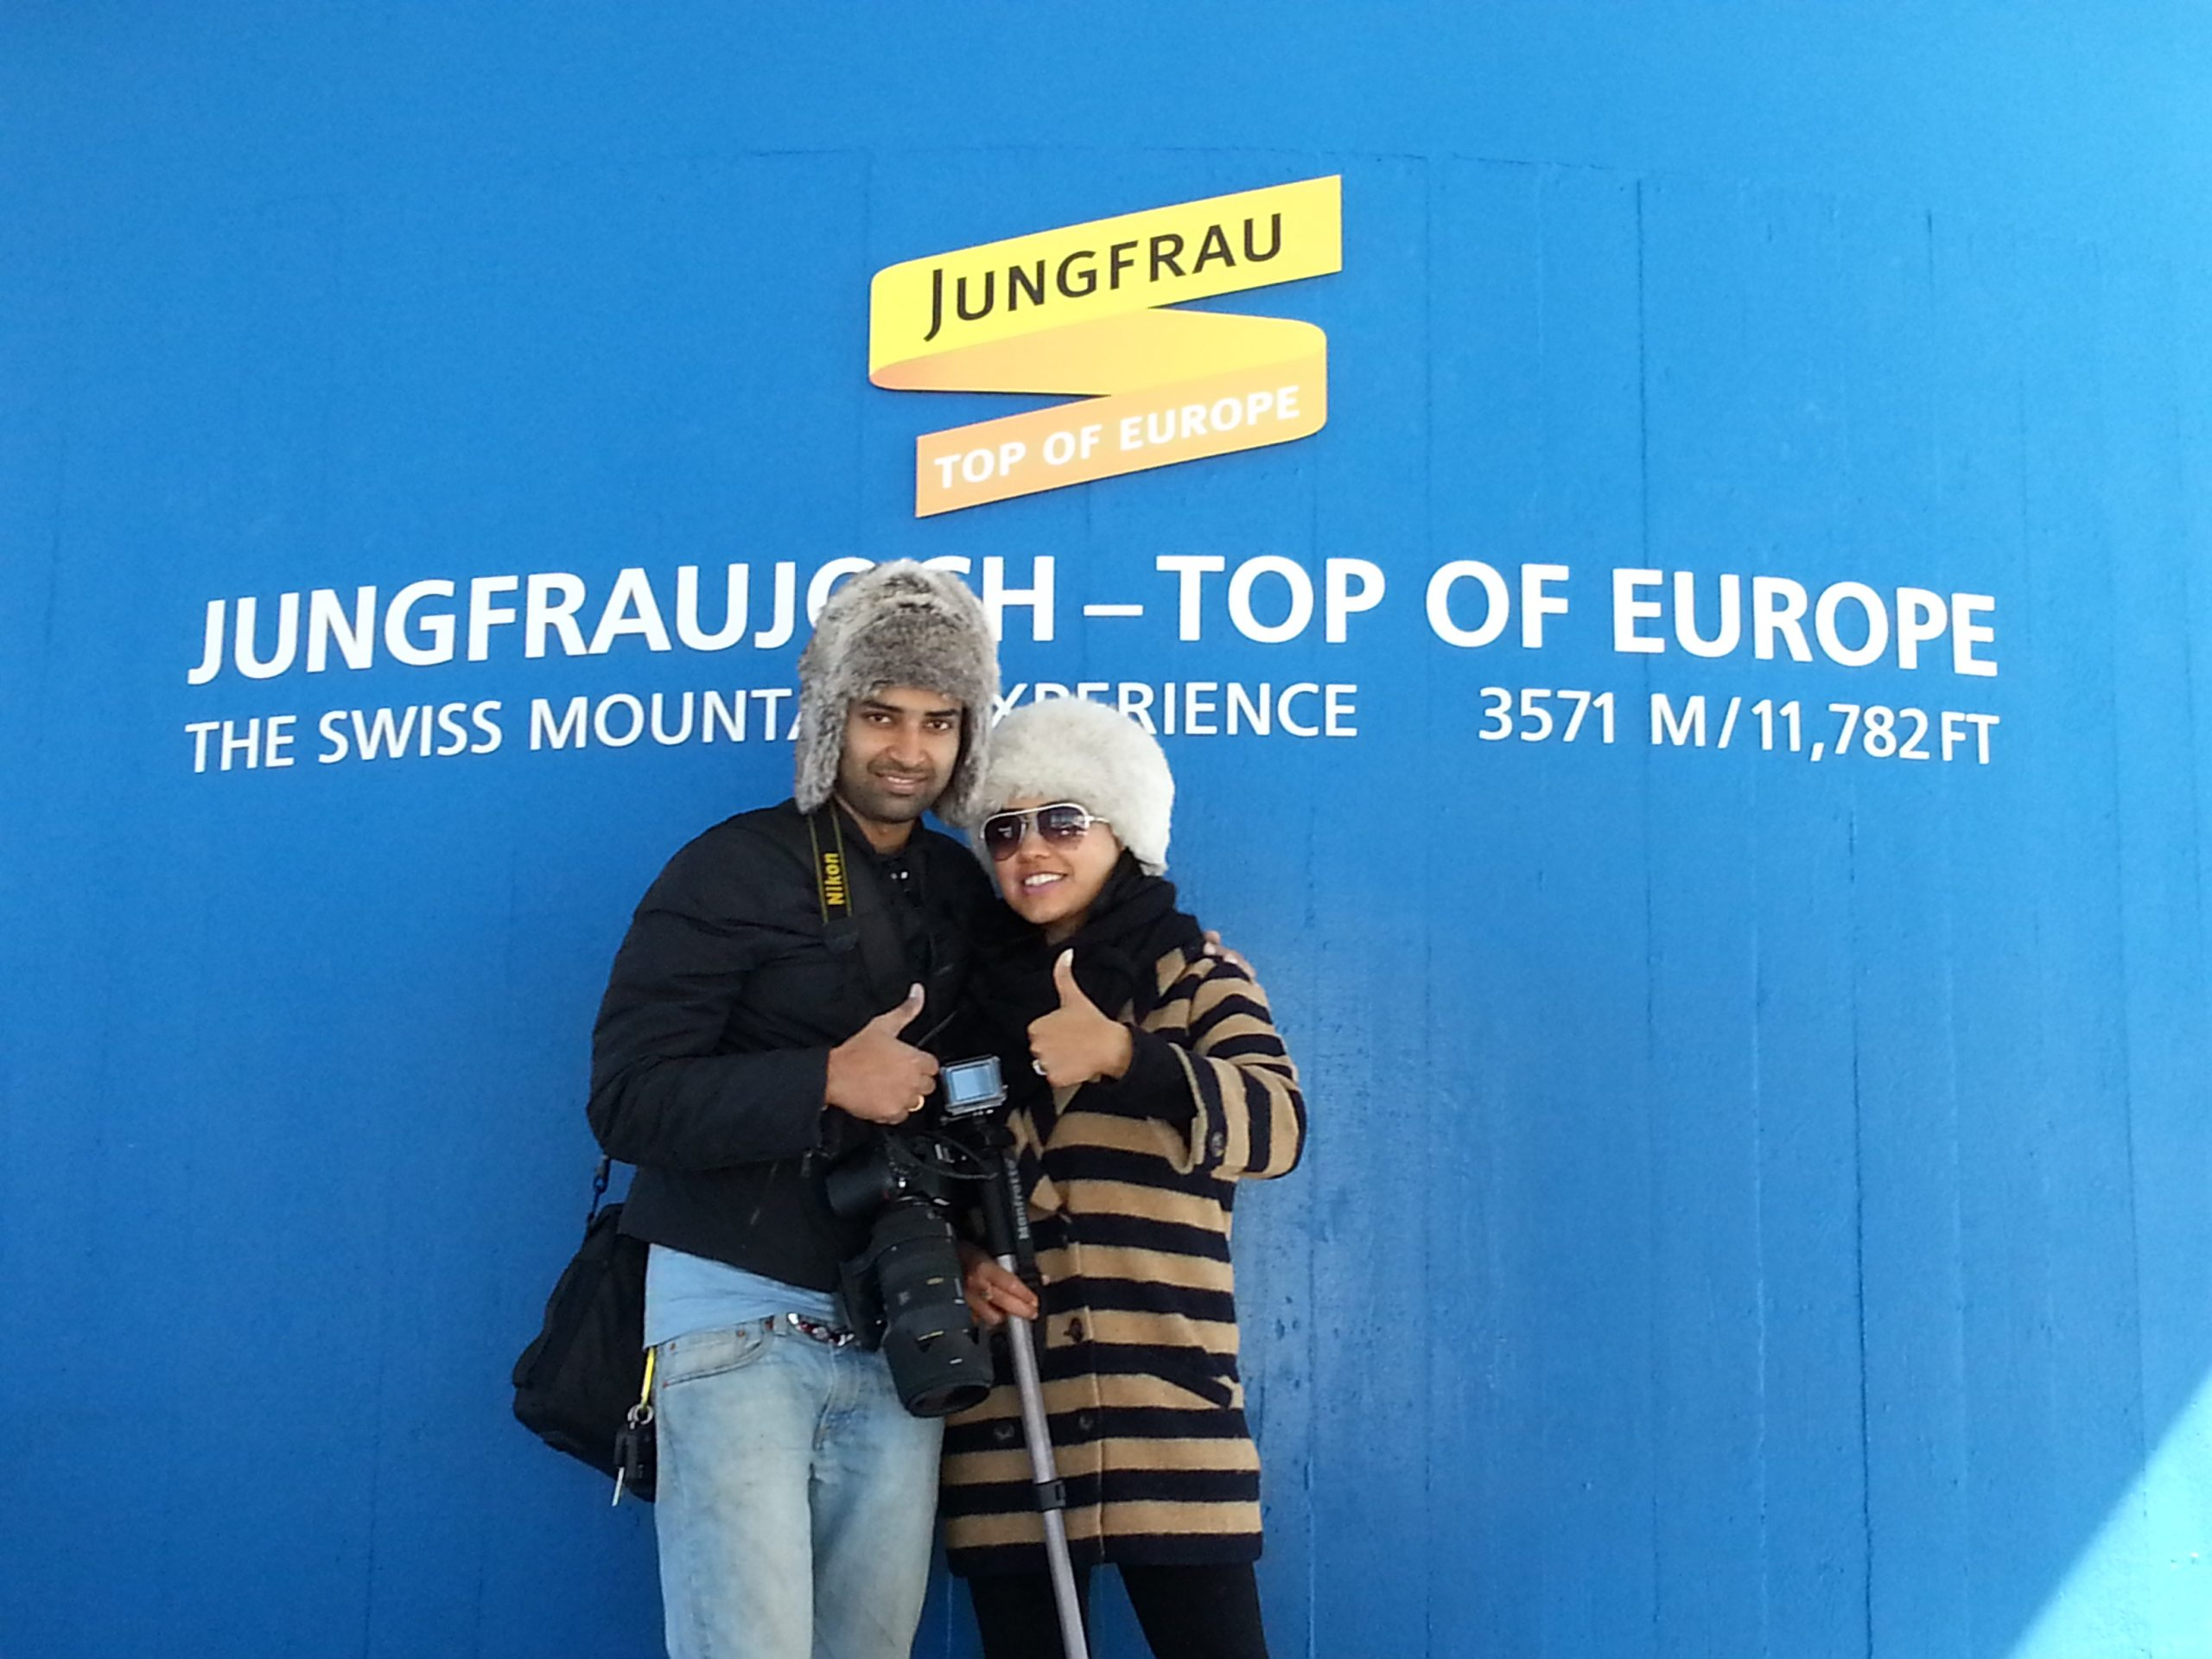 Day 08: Fun in Switzerland Continues… (Jungfrau – Top of Europe)